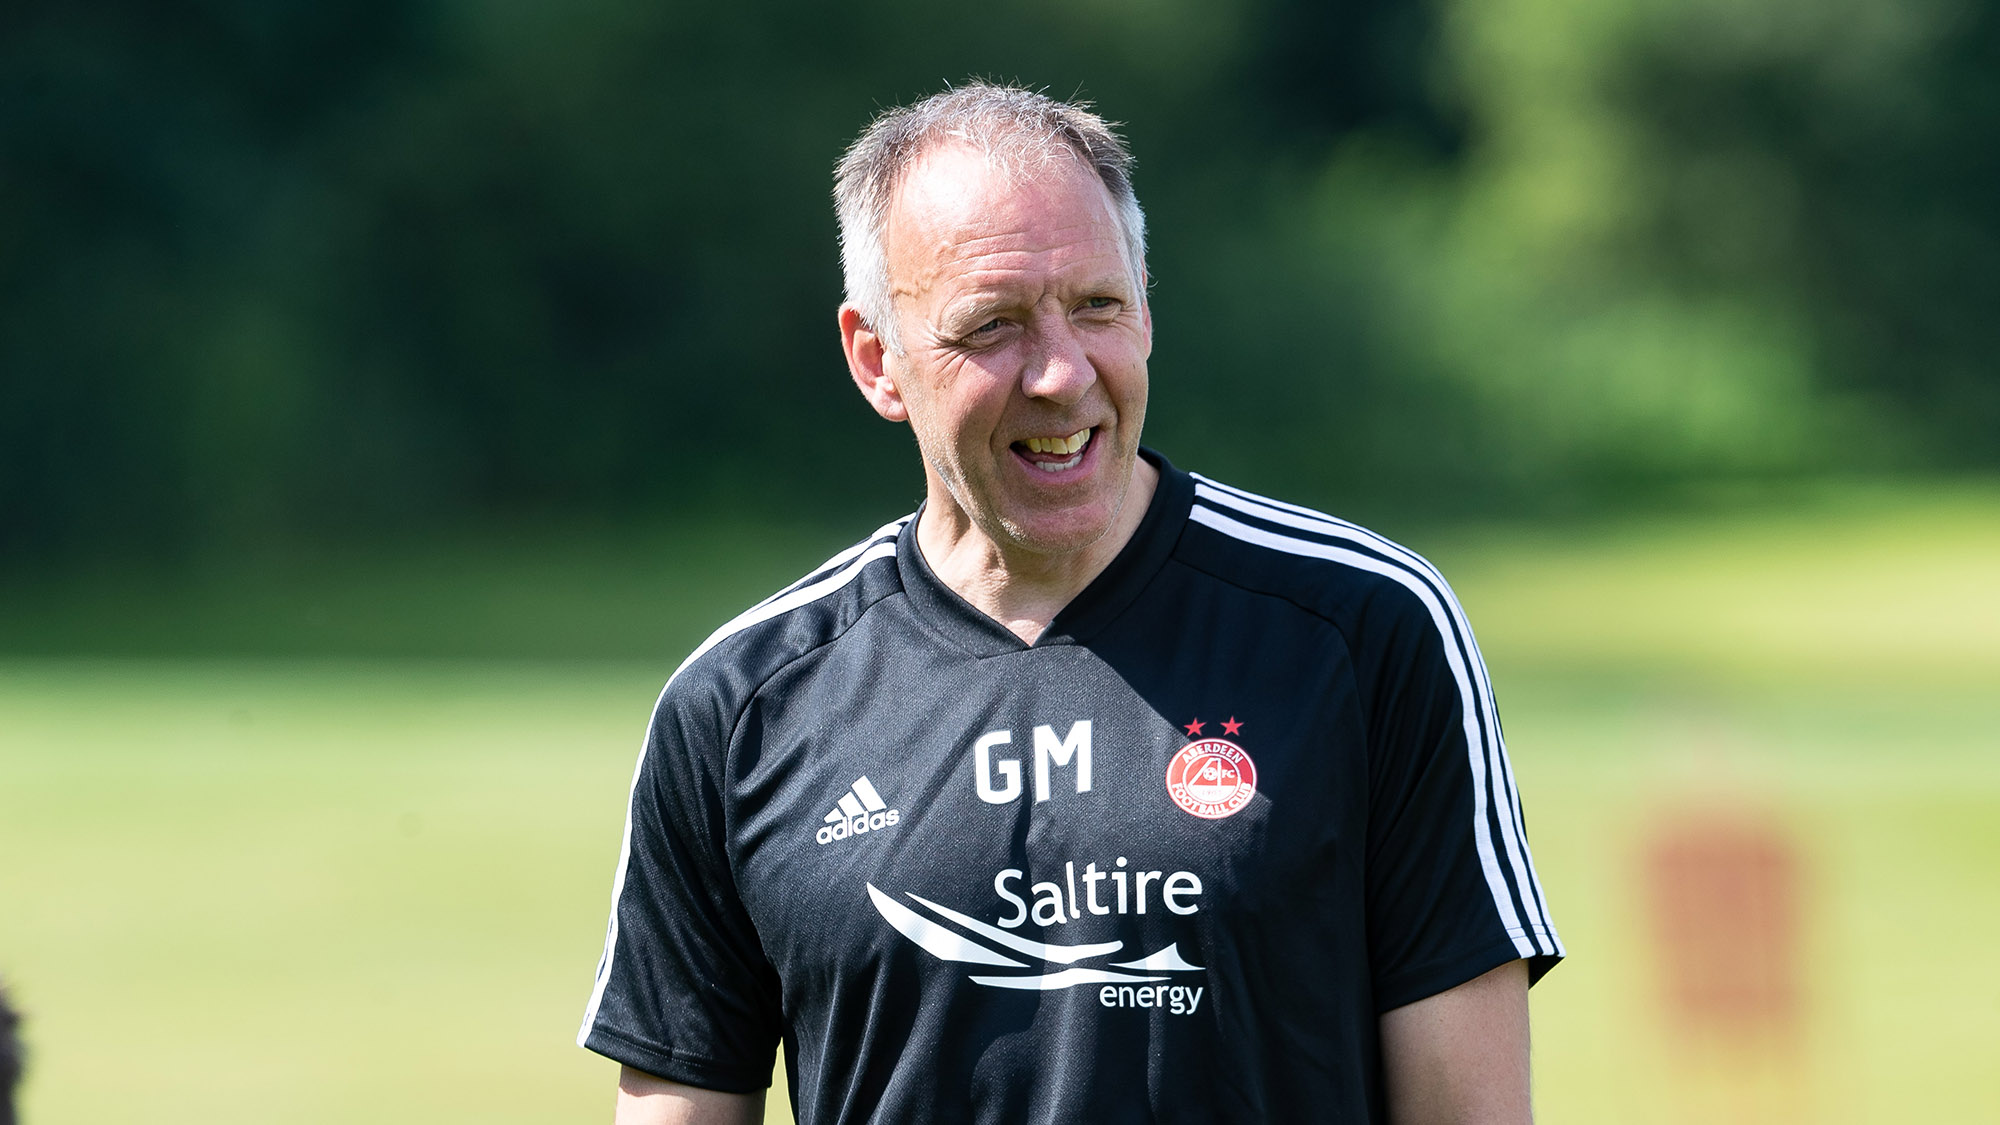 Feature with Goalkeeping Coach Gordon Marshall